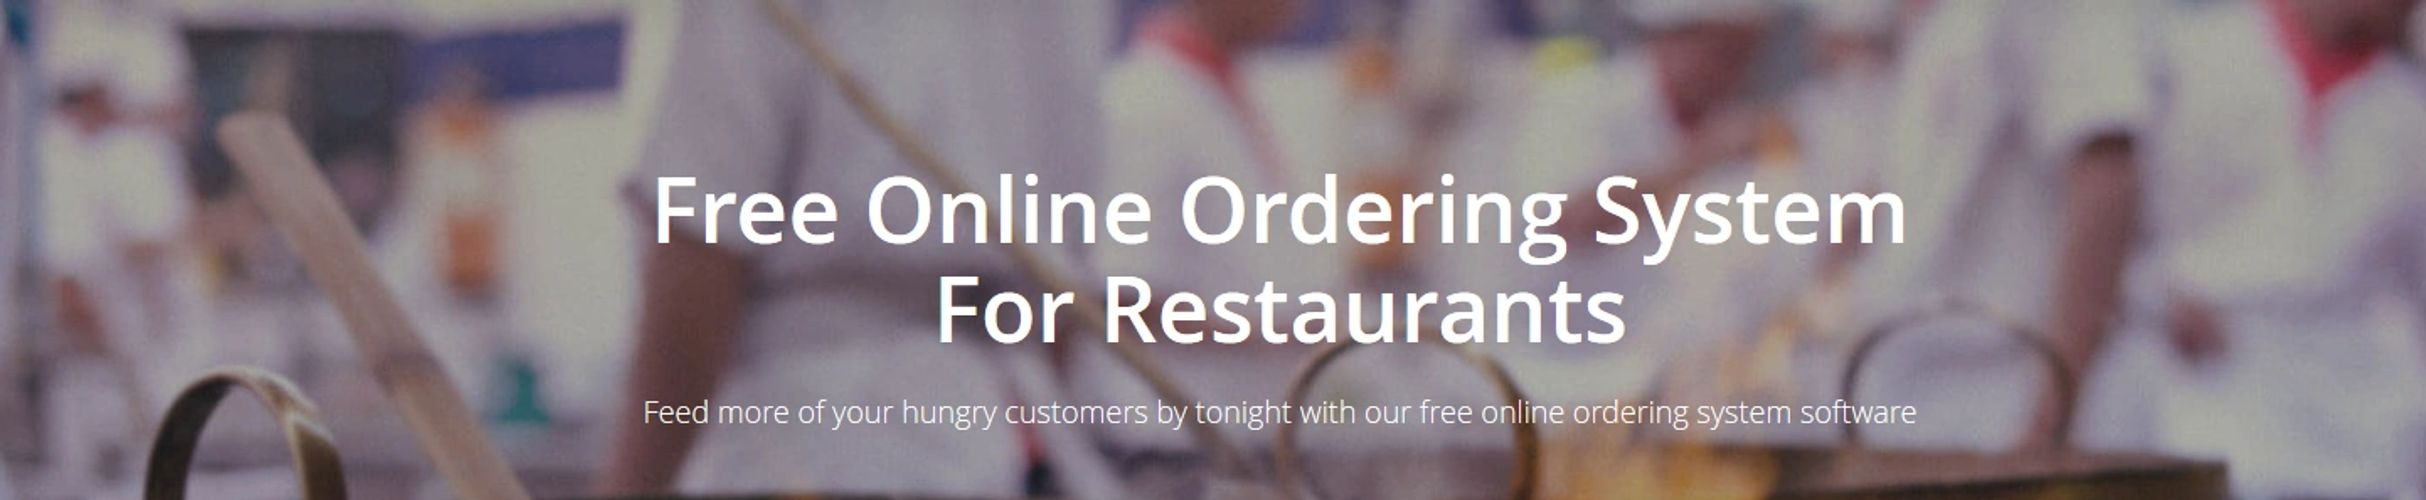 Free Restaurant Online Ordering System. Contactless curbside pos experts.